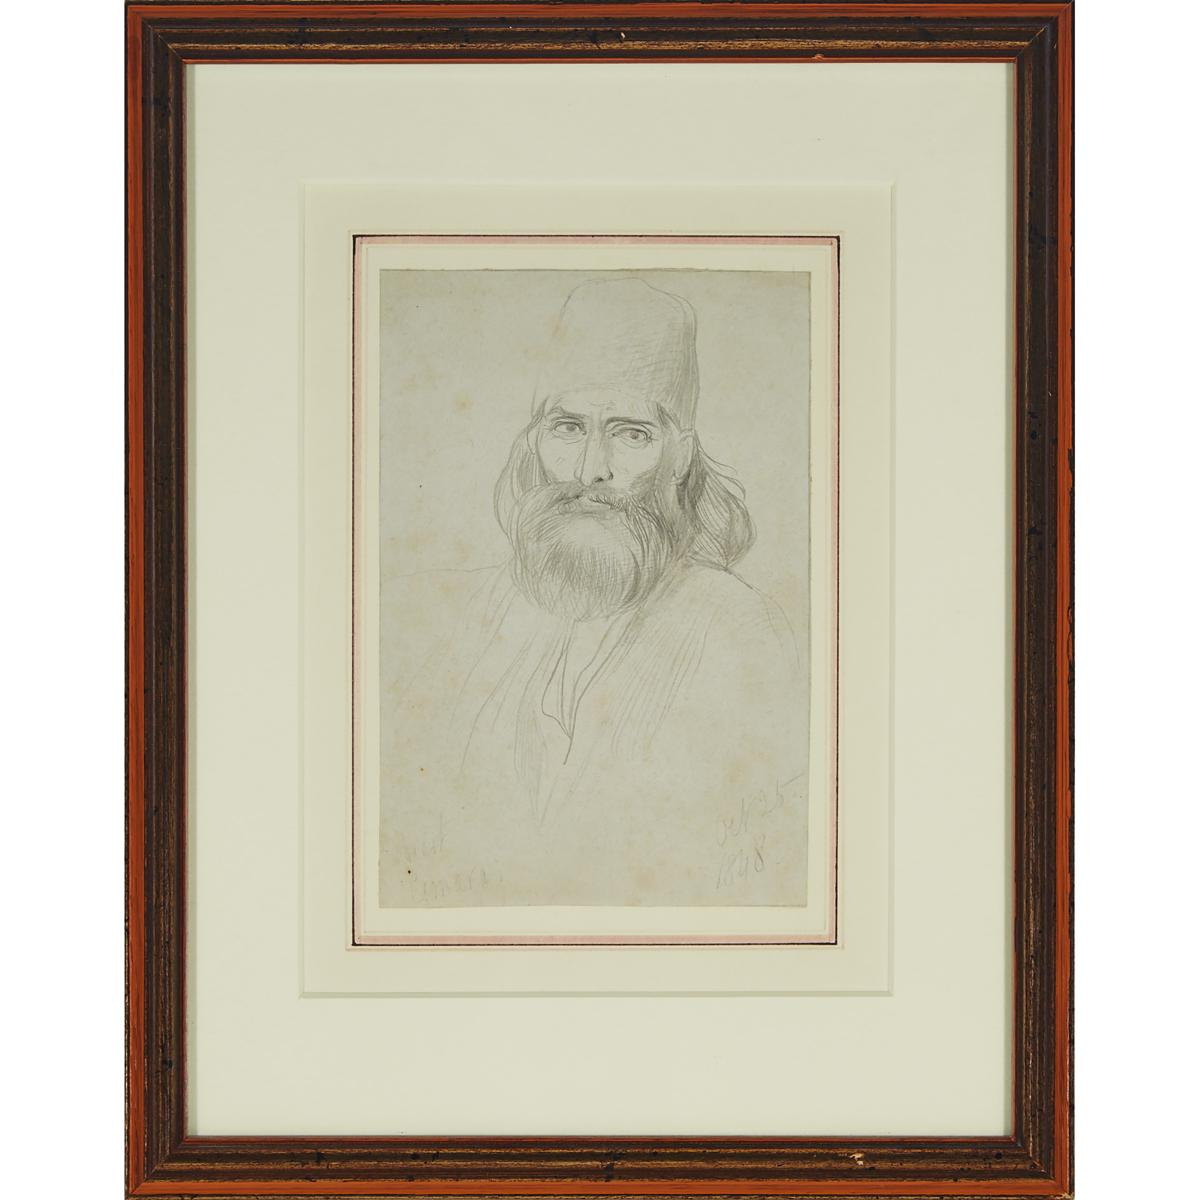 Collector's Group of Three Drawings, Sheet 8.25 x 6.5 in — 21 x 16.5 cm; 5.5 x 8.5 in — 14 x 21.6 cm - Image 8 of 9